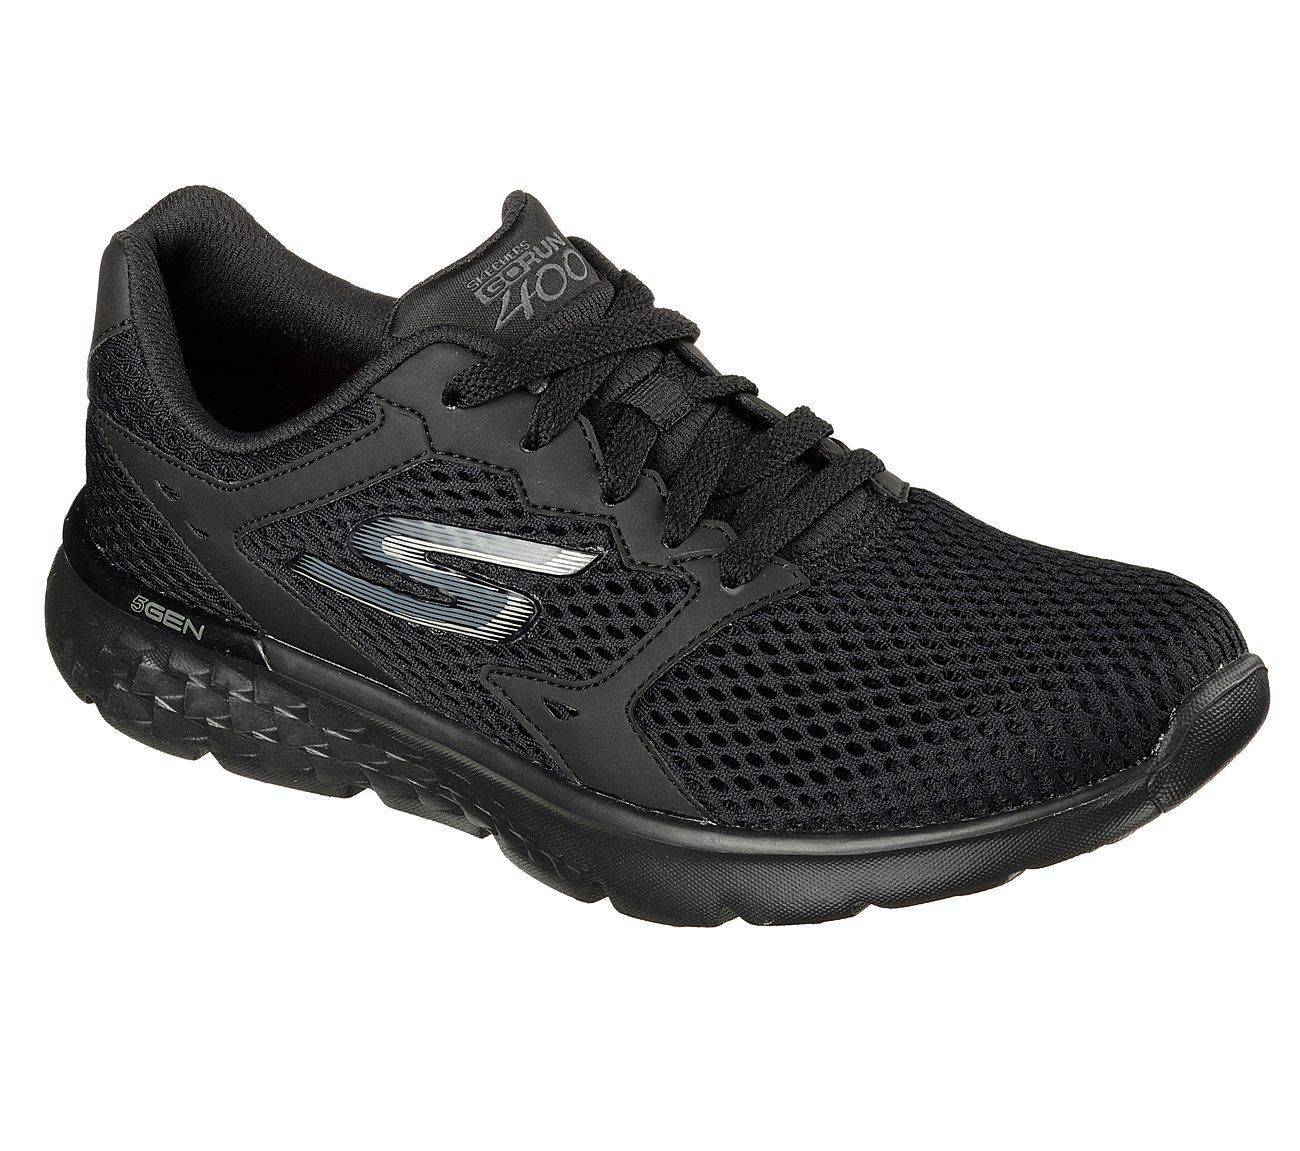 Skechers GORUN 400 Black sneakers for Women -7.5